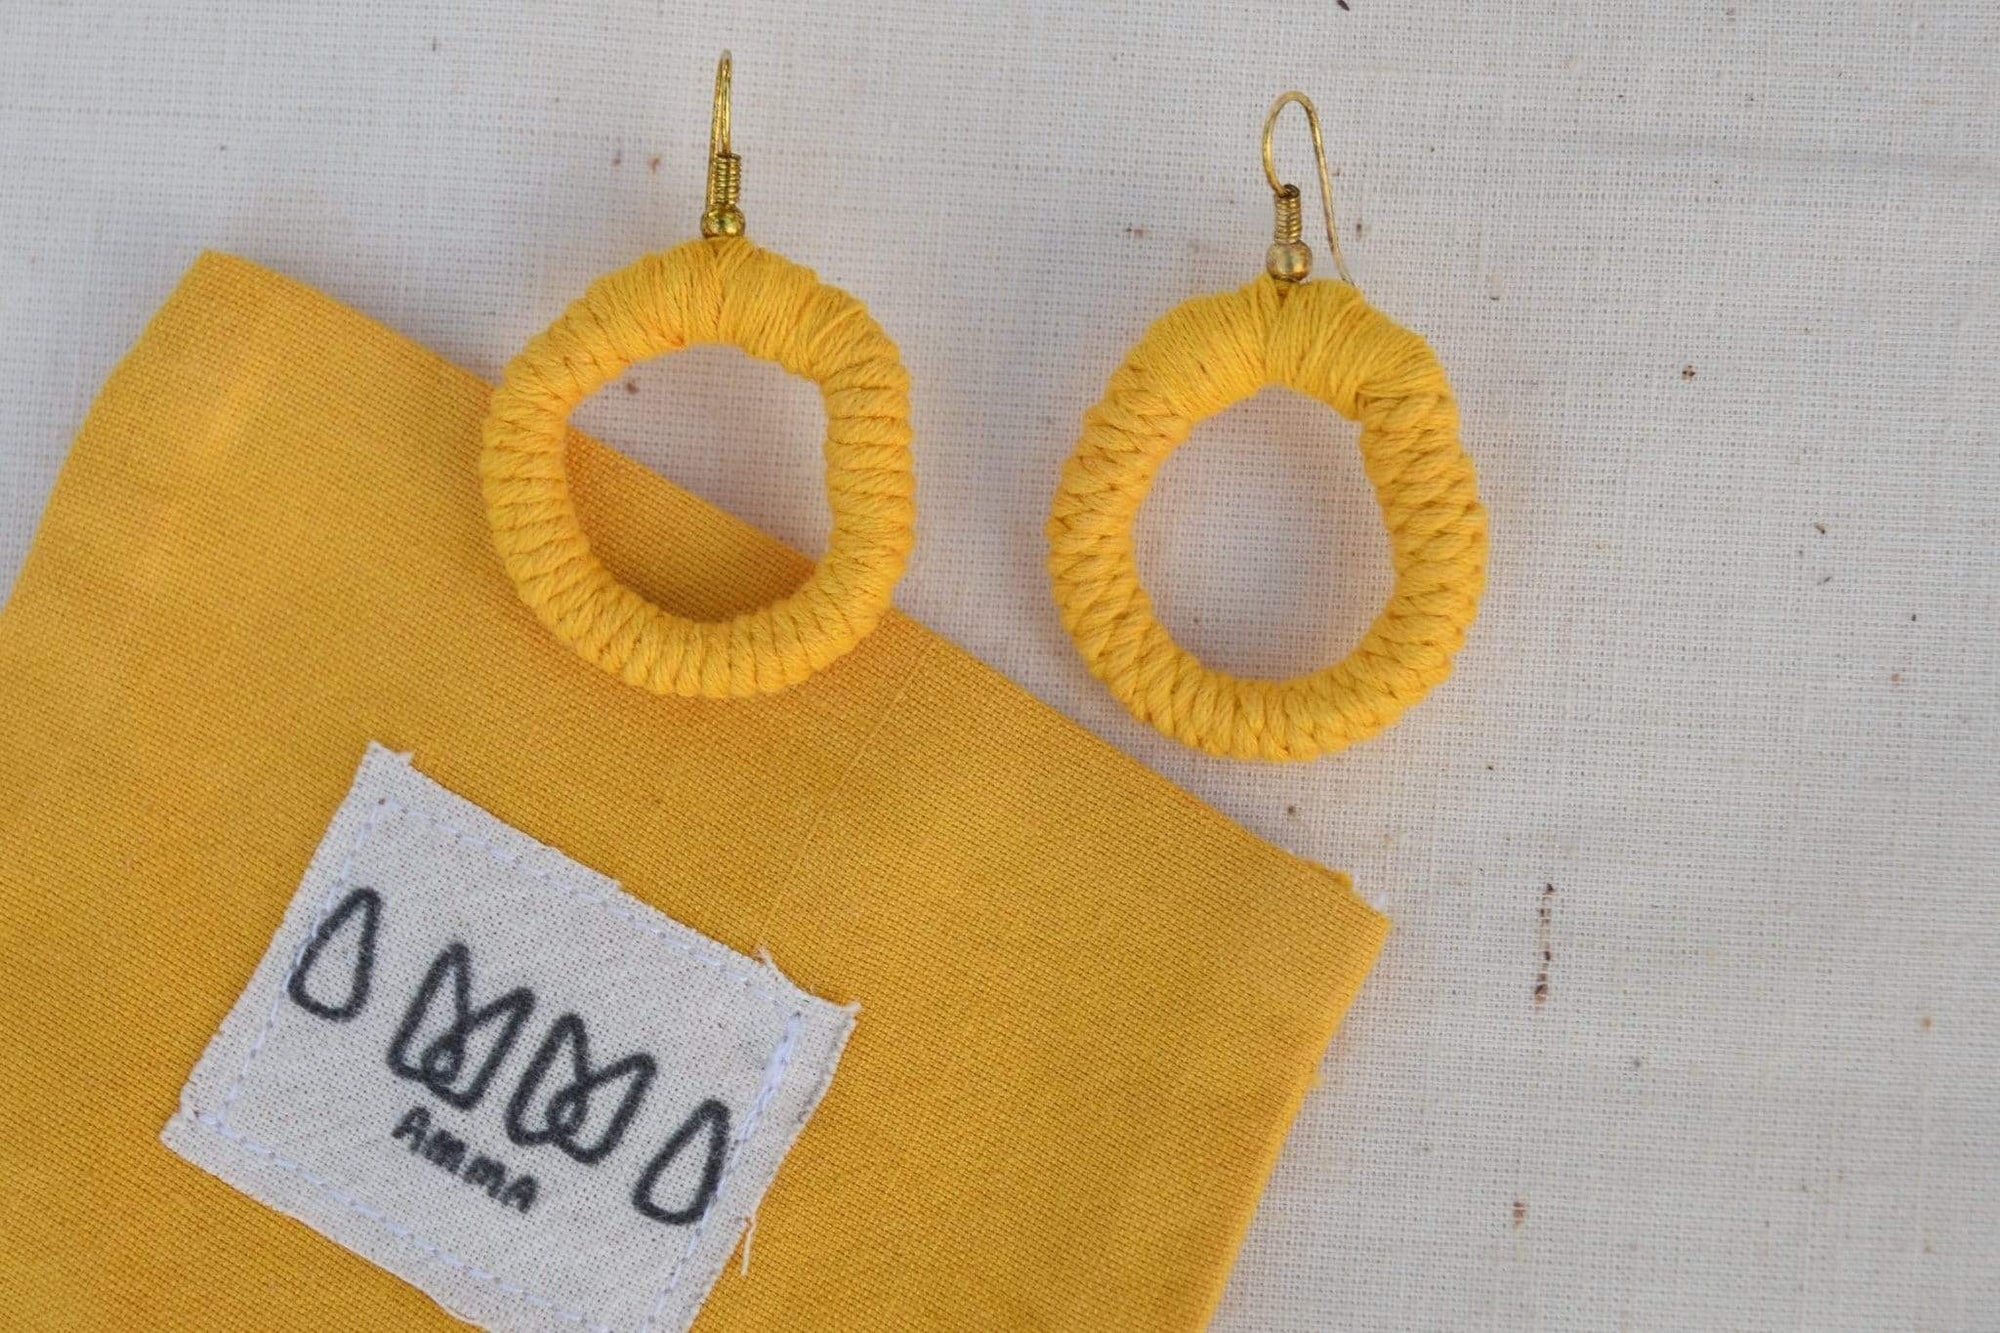 sustainable ethical handmade handloom slow-fashion Naturally Dyed Earrings | Tumeric made in sri lanka